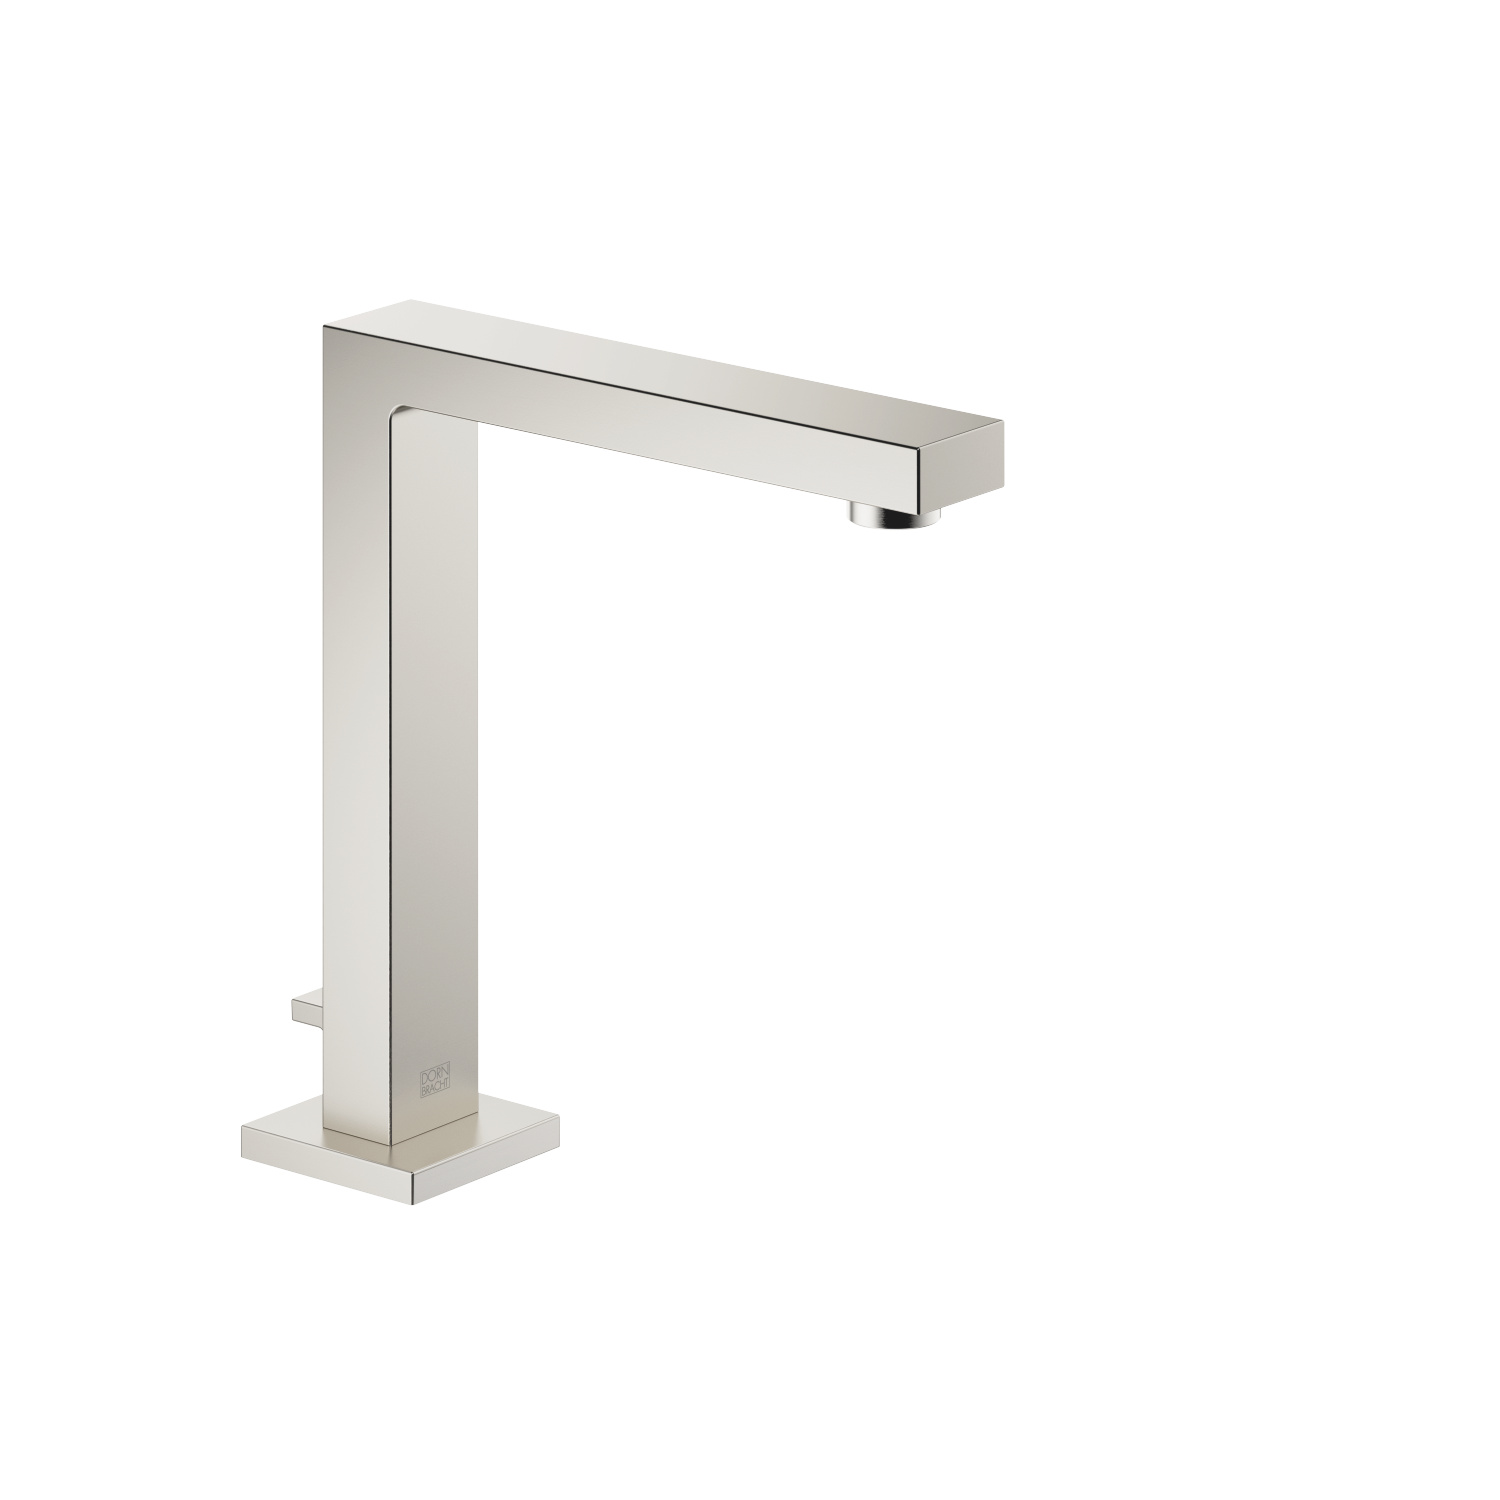 Deck-mounted basin spout with pop-up waste - platinum matt